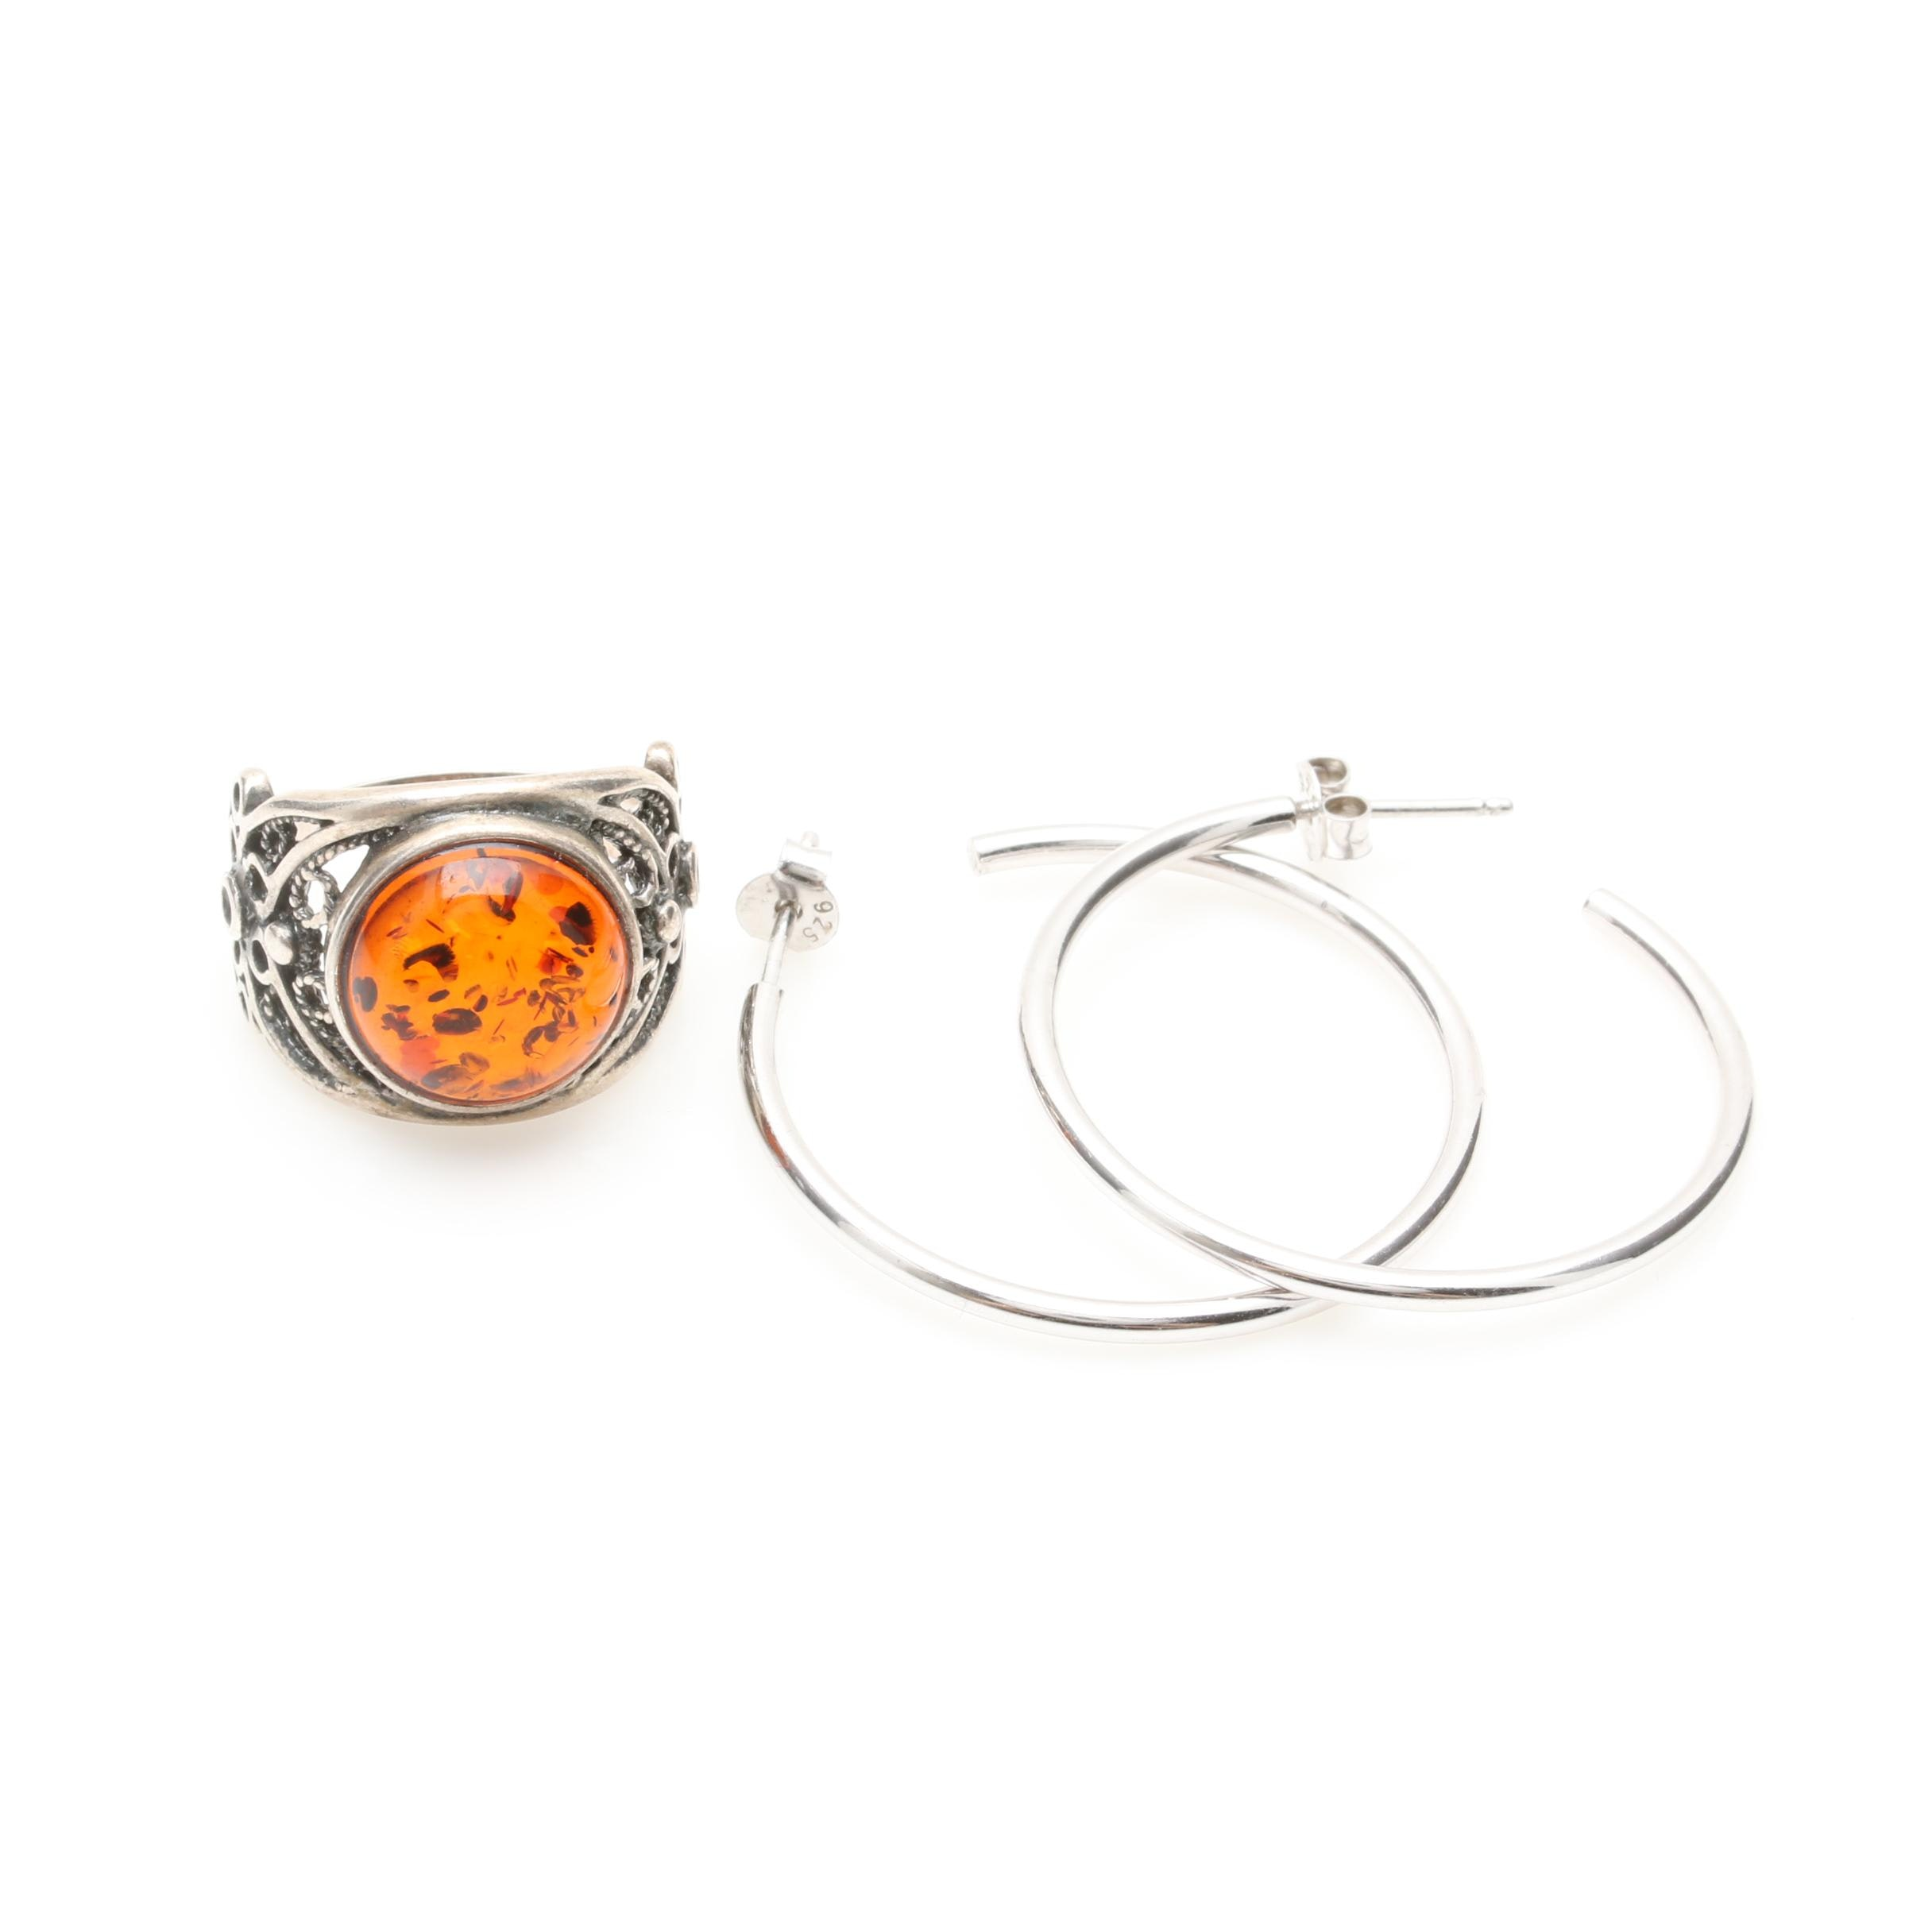 Sterling Silver Polish Made Amber Ring and Hoop Earrings